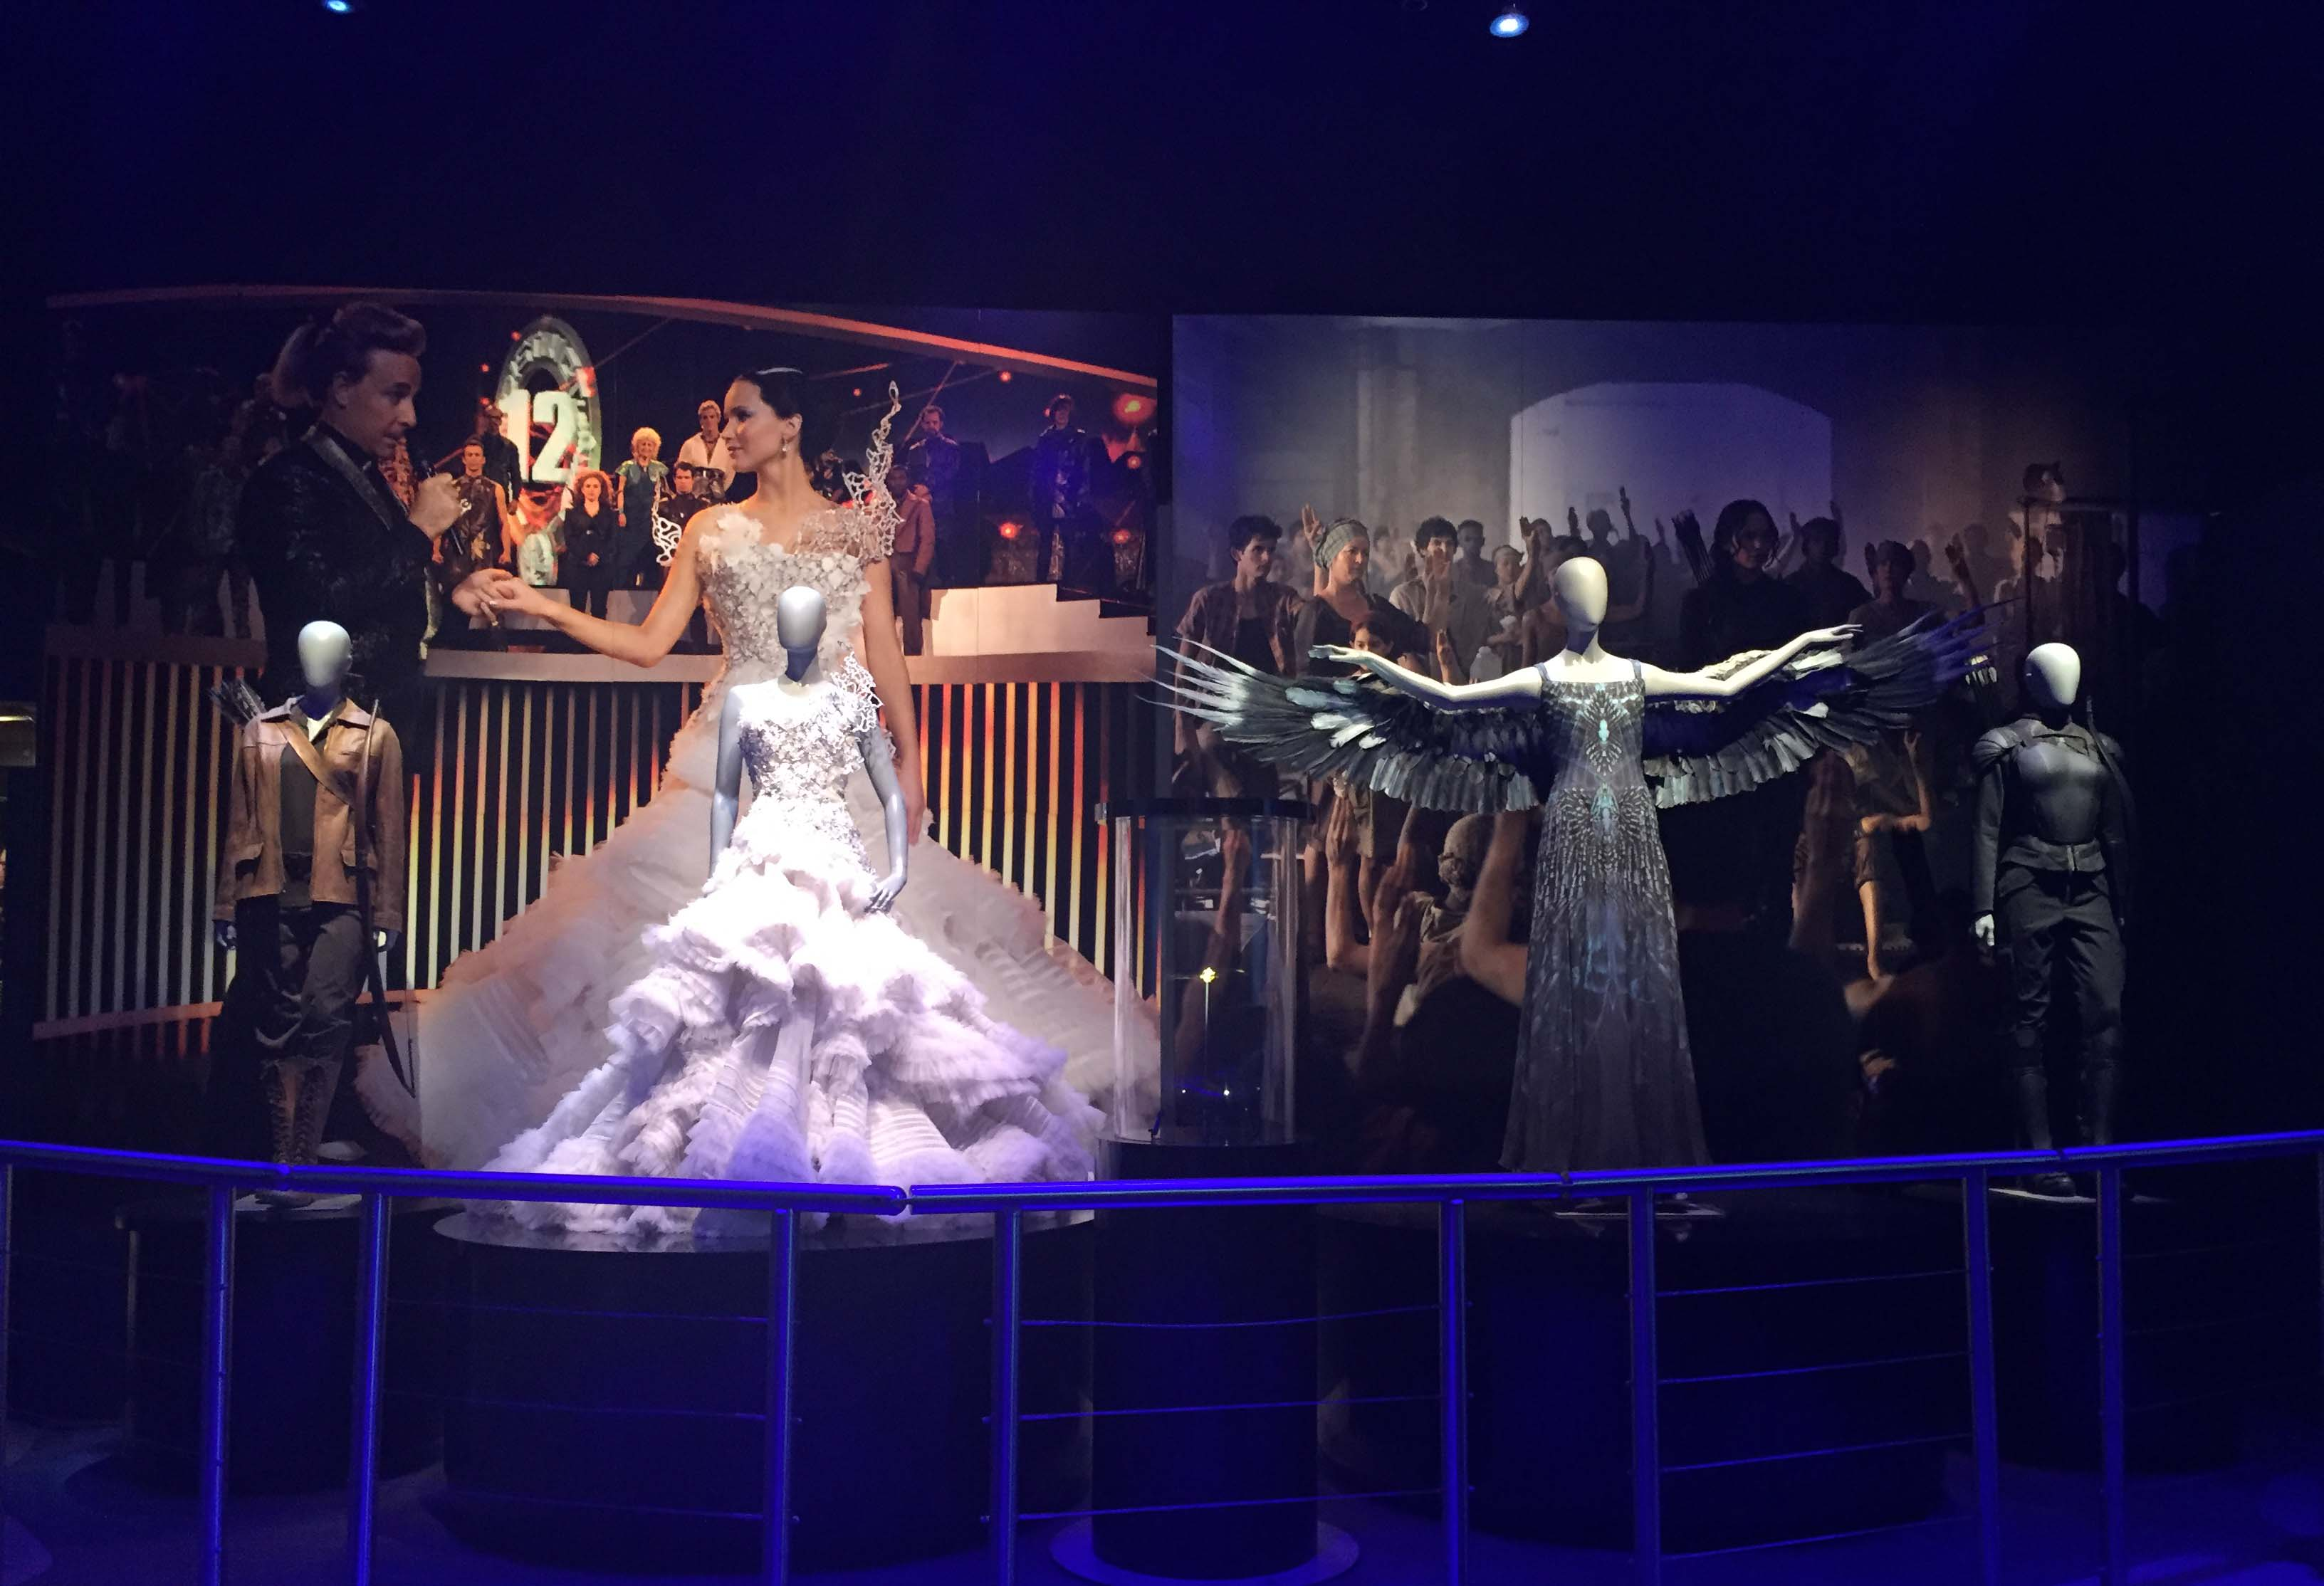 Katniss Everdeen is highlighted through a series of costumes in the final room of